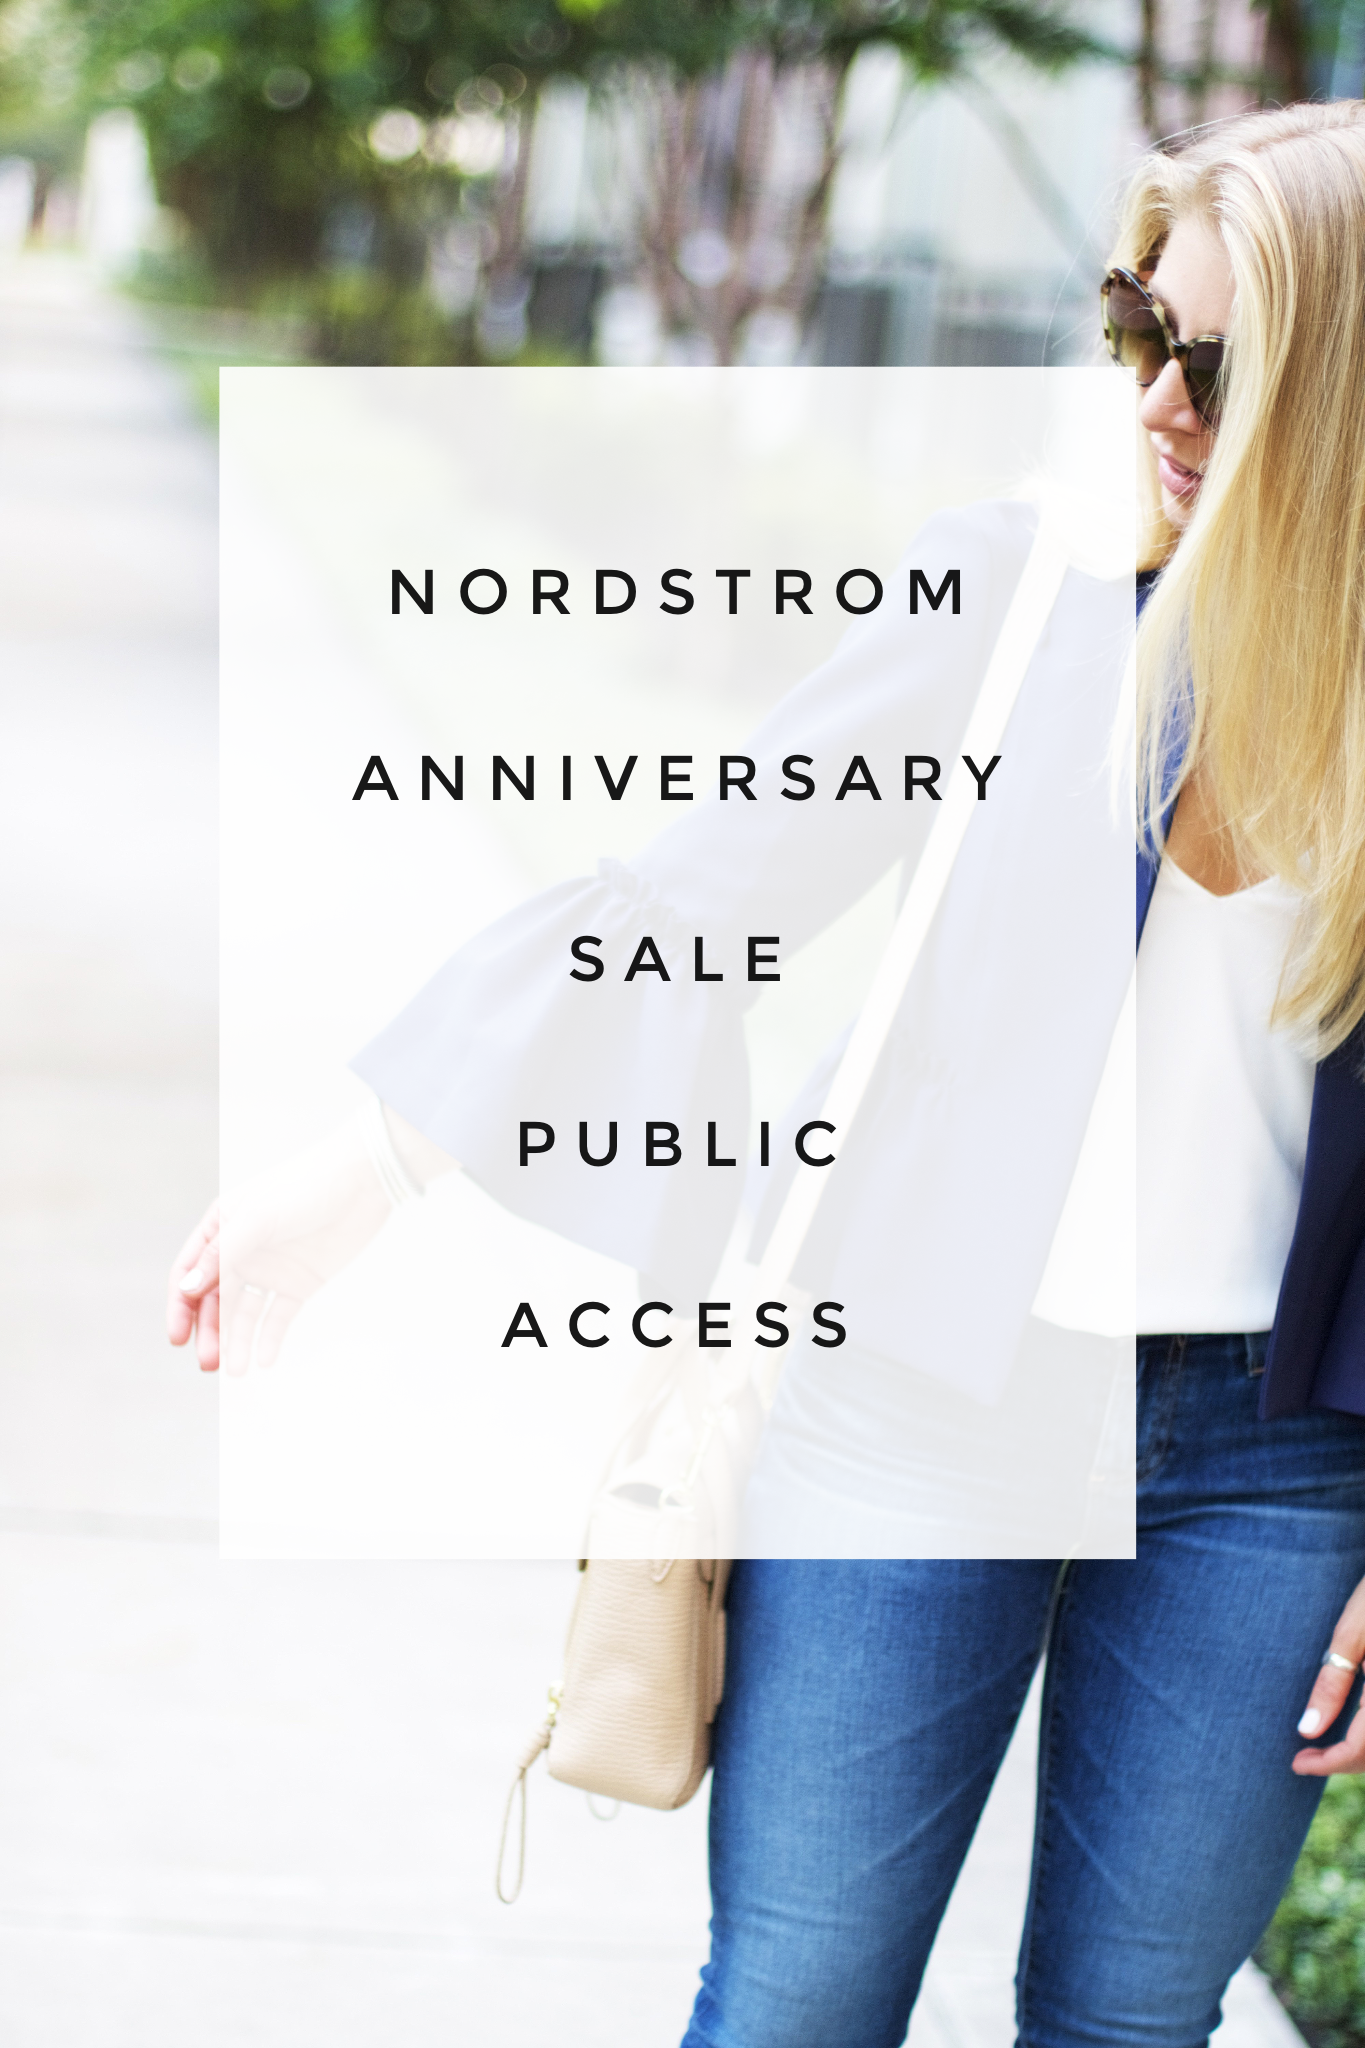 nordstrom anniversary sale public access. Black Bedroom Furniture Sets. Home Design Ideas